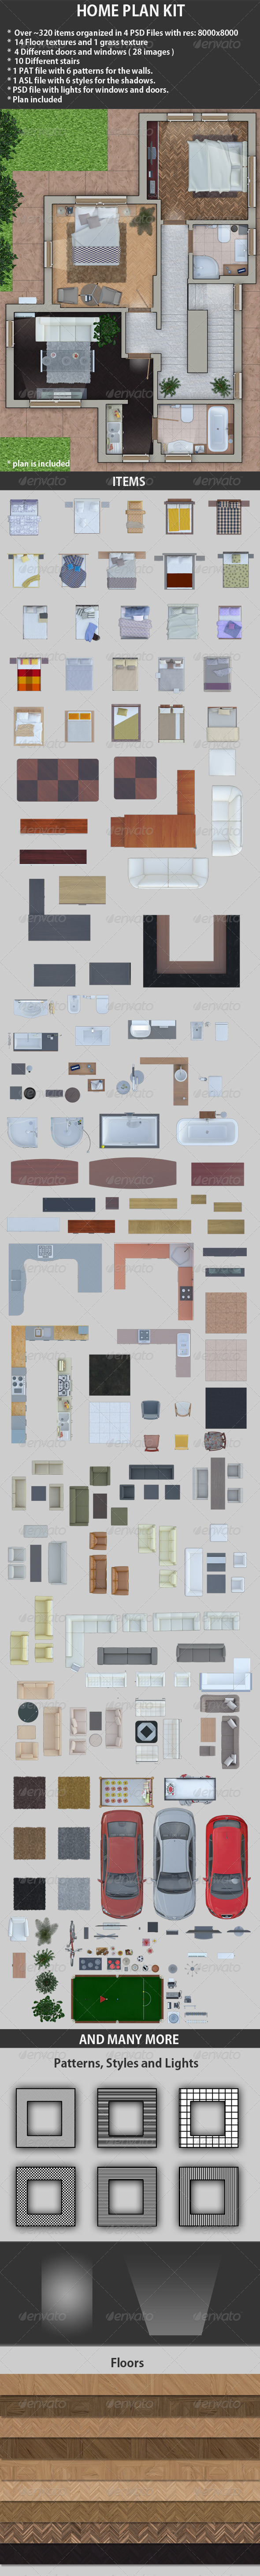 Home Plan Kit - Miscellaneous Product Mock-Ups